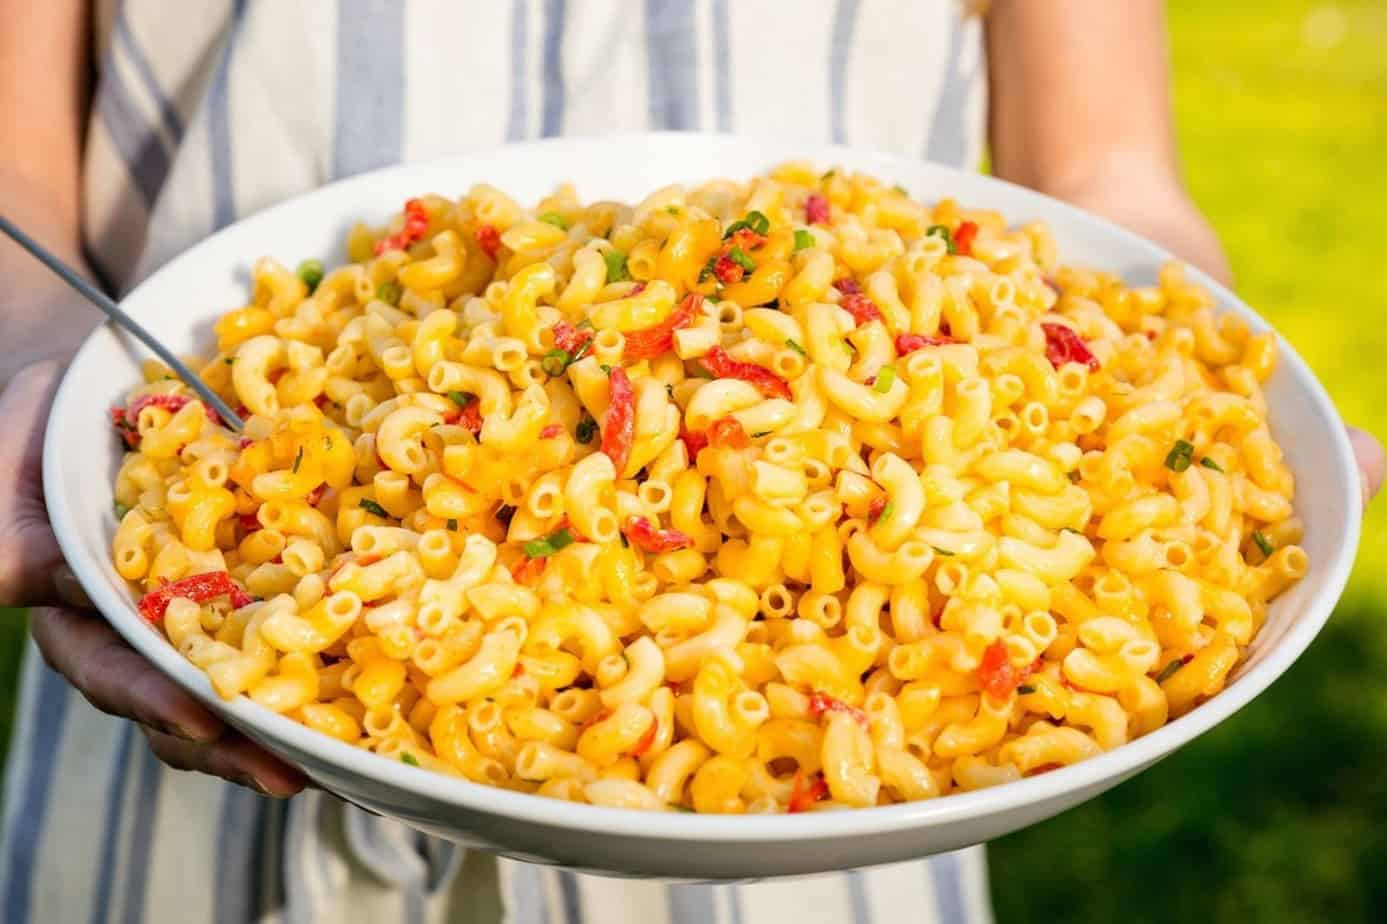 A large plate of pimento cheese pasta salad being served outdoors